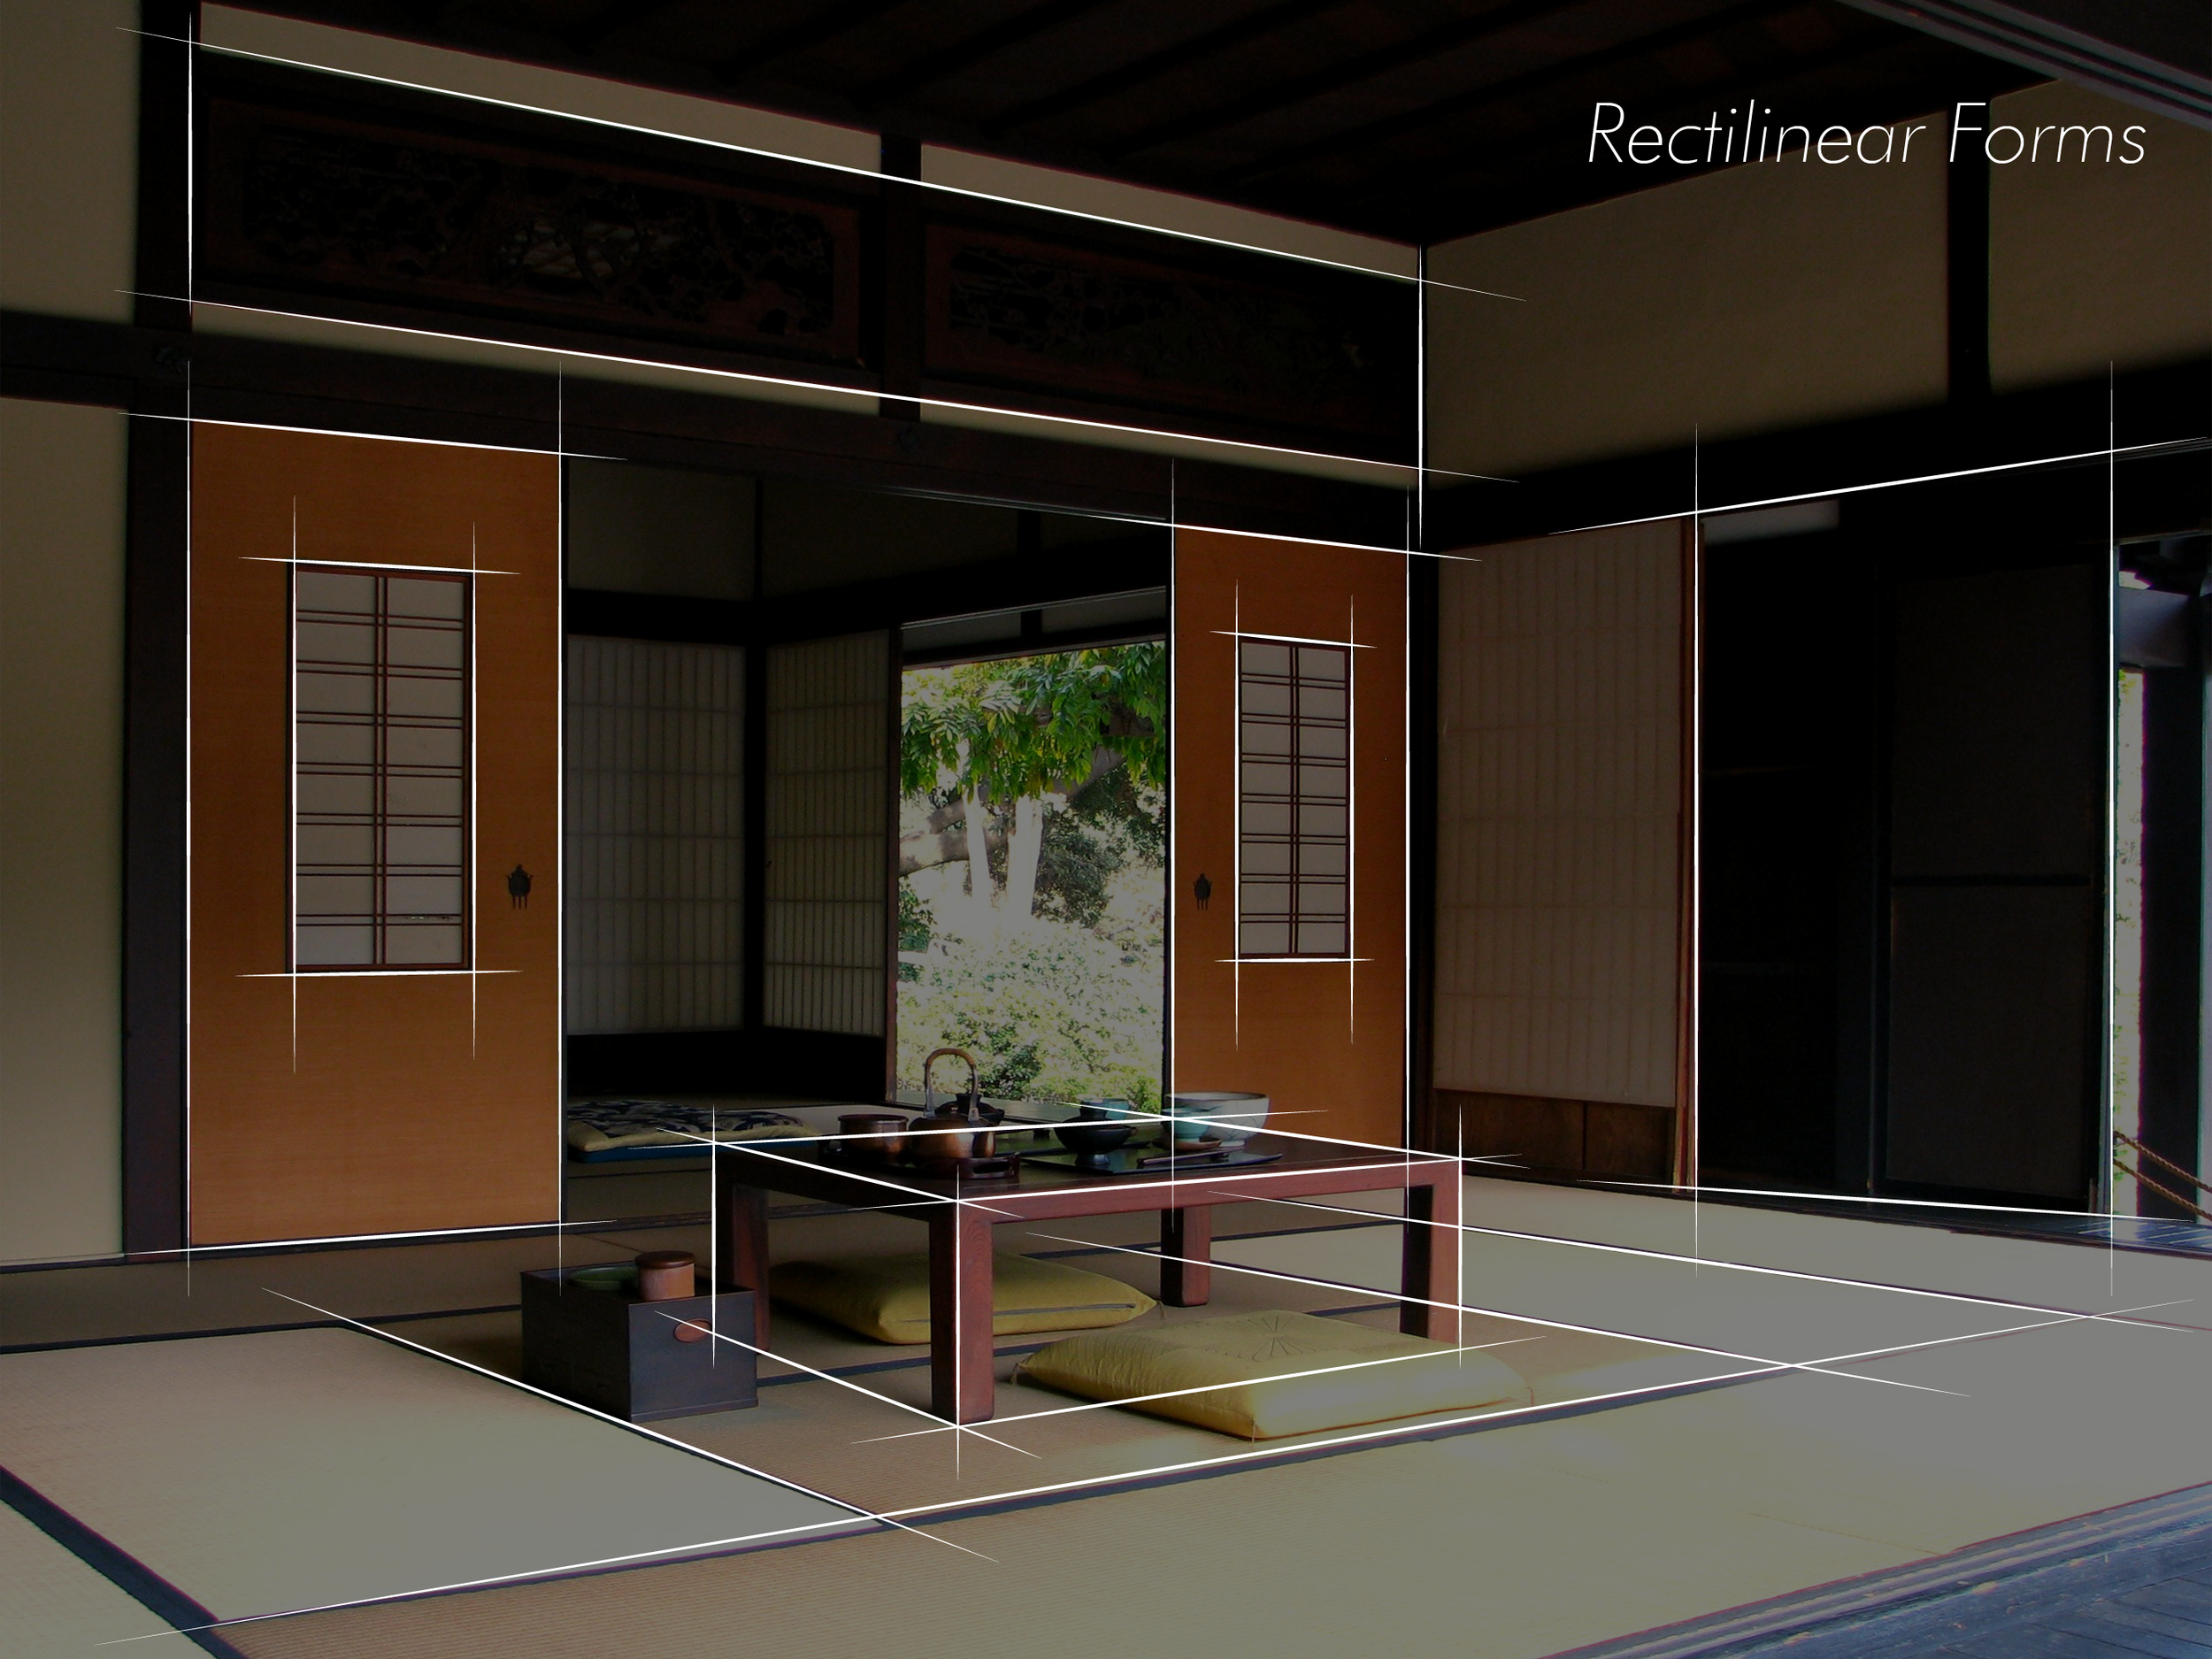 Rectalinear Forms in Japanese Aesthetics-01.png